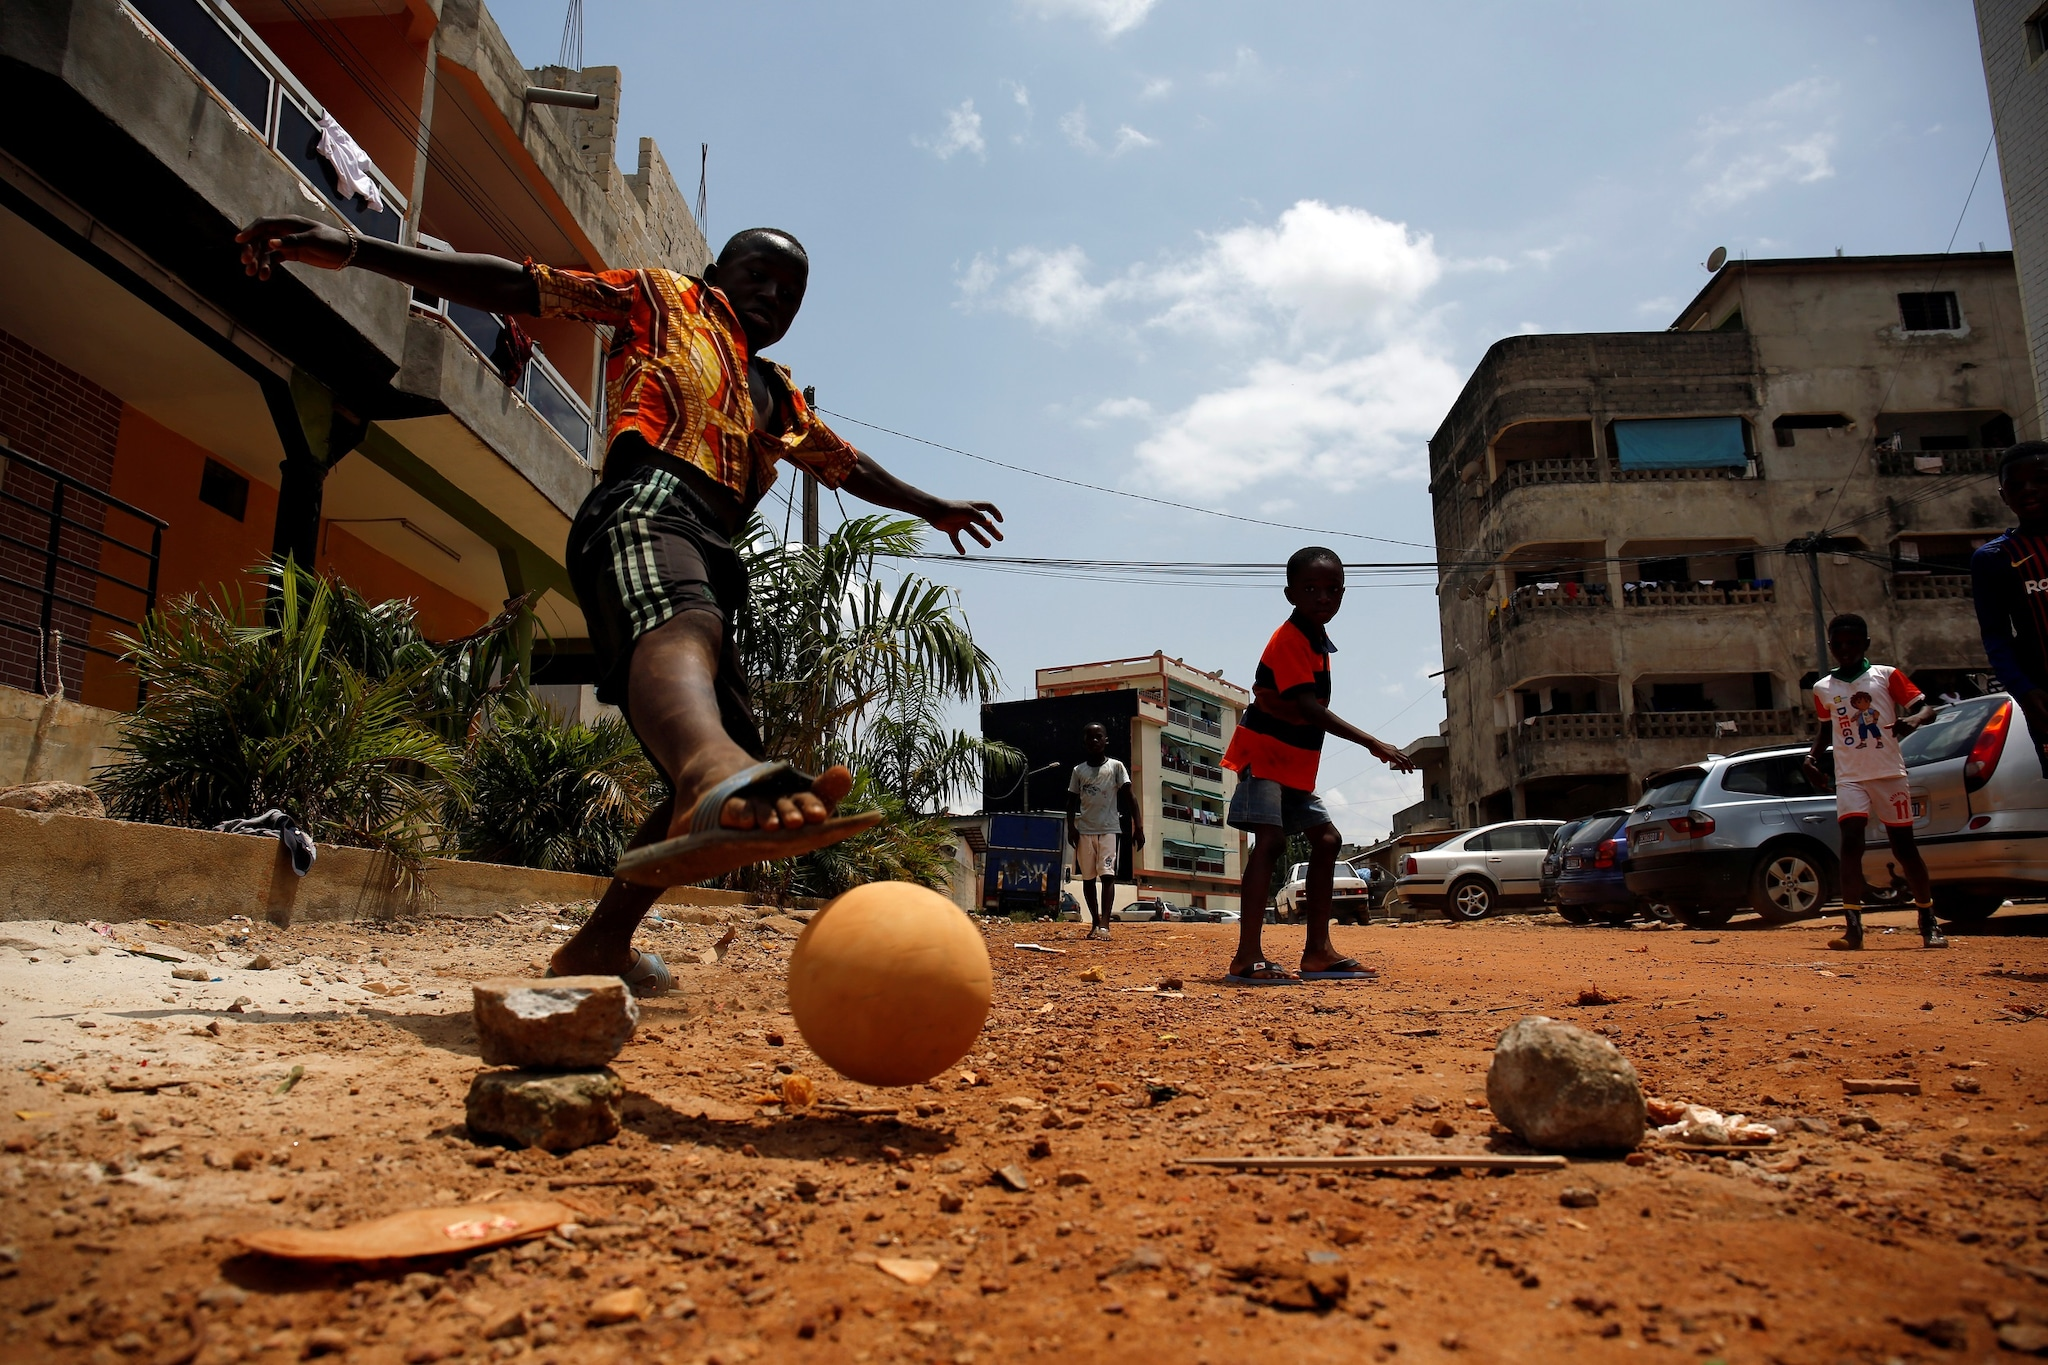 Remi Bamba scores a goal during a football match in a street of a neighborhood in Abidjan, Ivory Coast May 21, 2018. Remi said